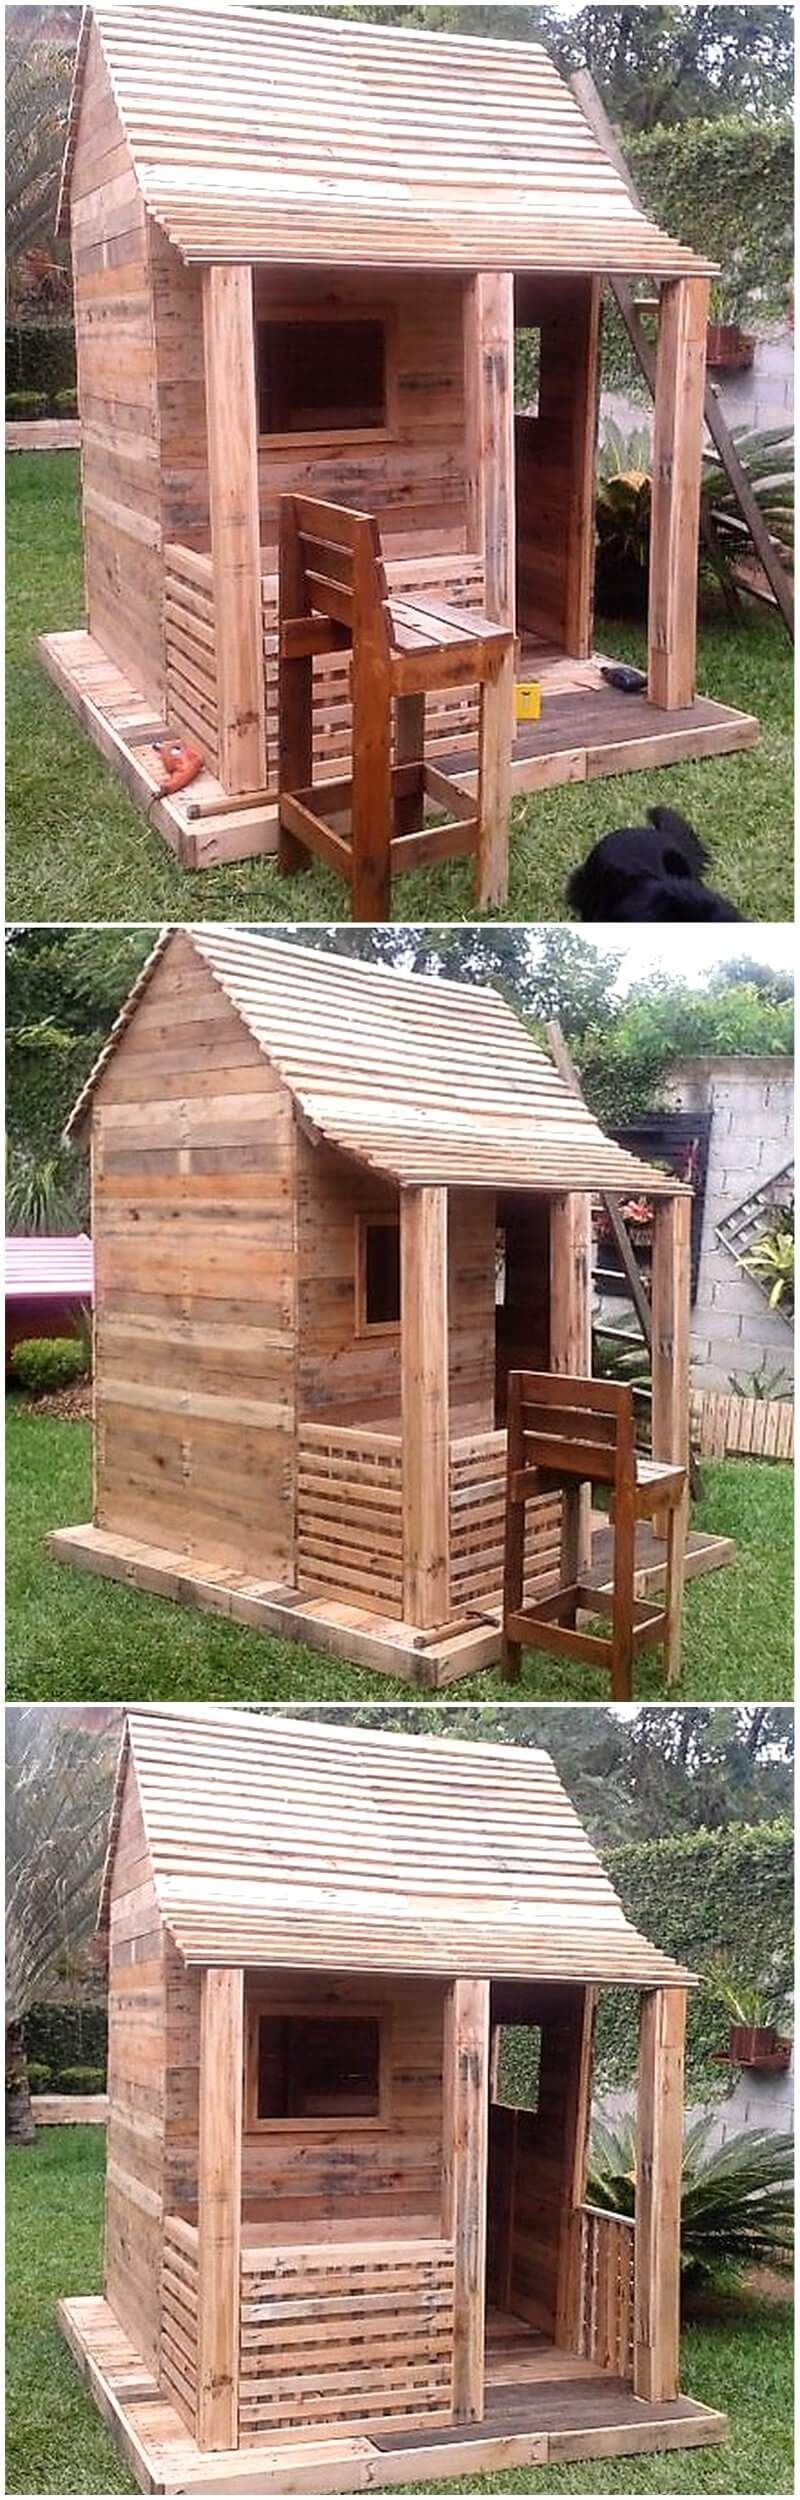 Creative Pallet Recycling DIY Ideas And Projects #oldpalletsforcrafting